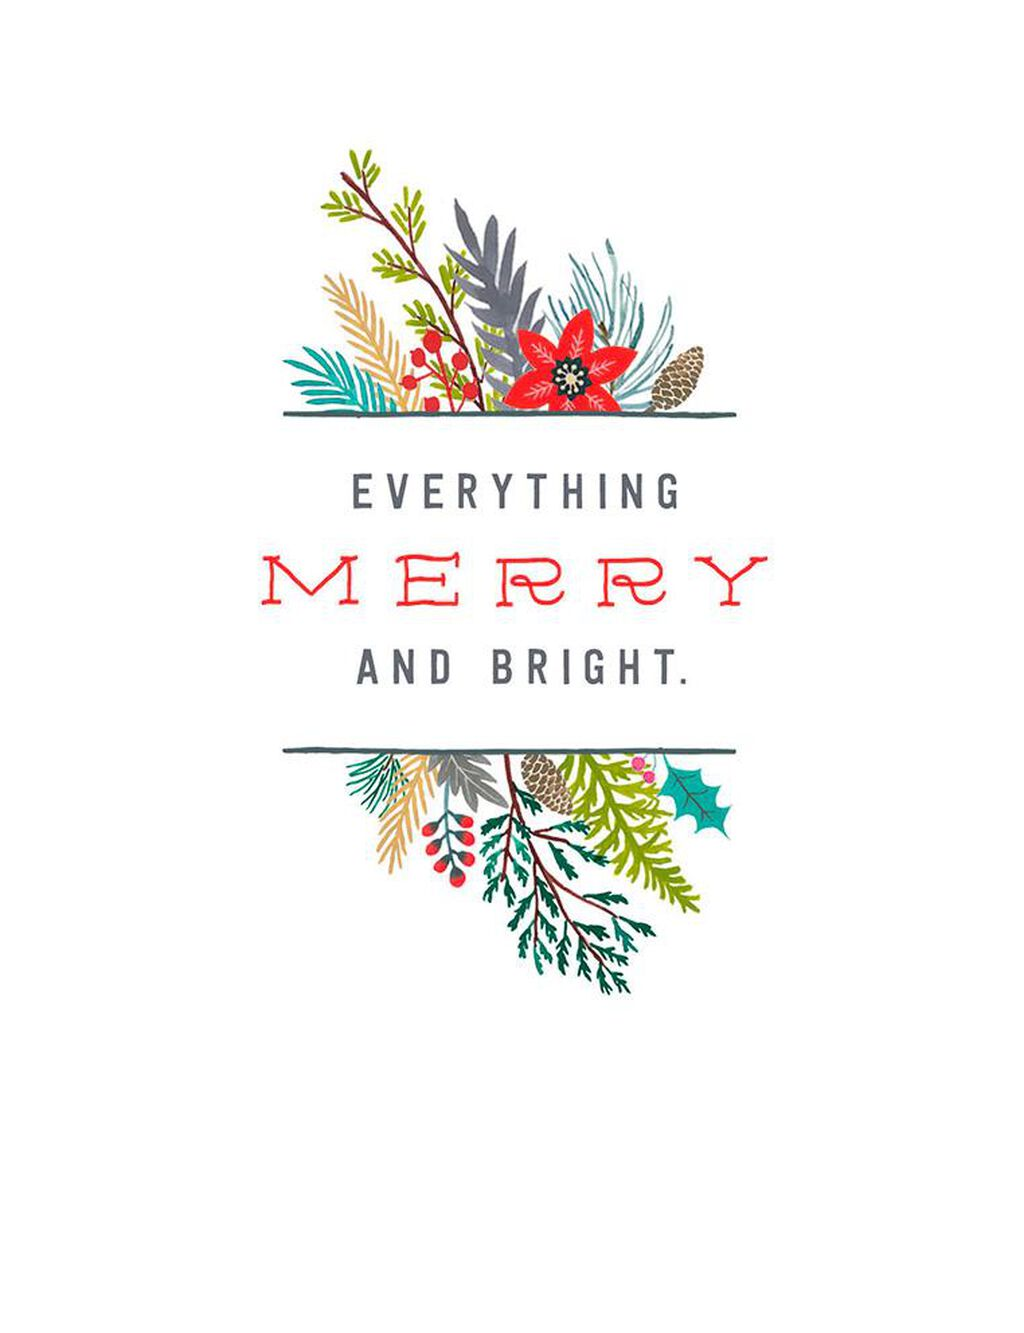 Everything Merry and Bright Christmas Card - Greeting Cards - Hallmark